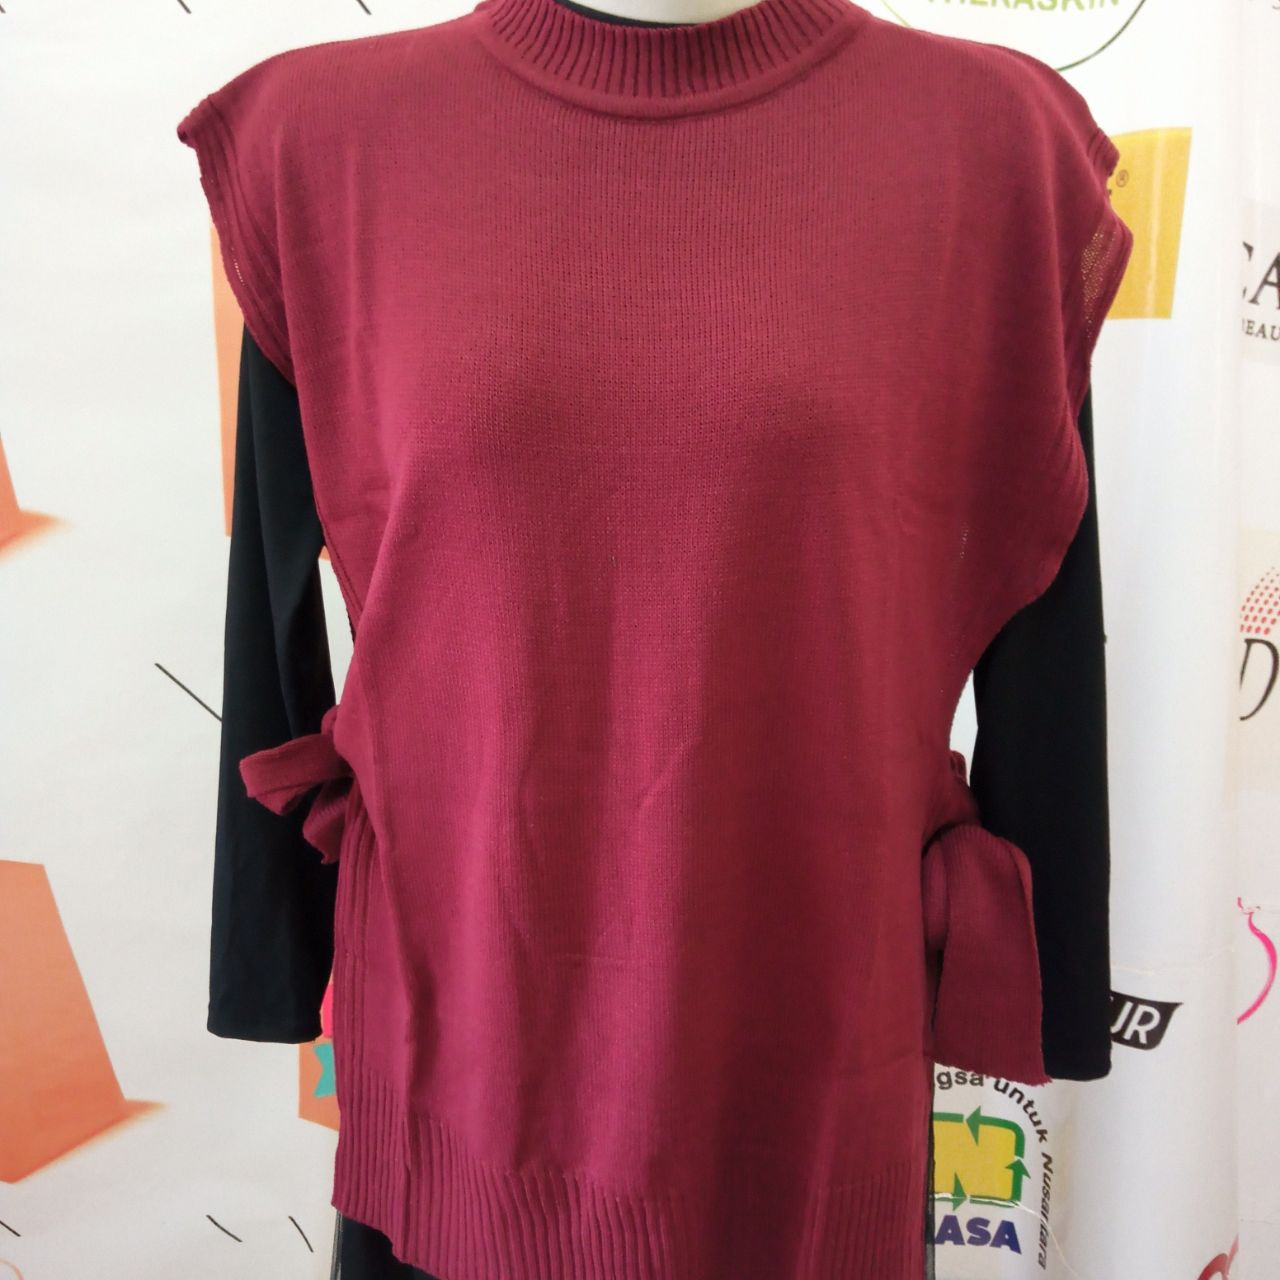 ini adalah Rajut Vest Andin Marun, size: L, material: knit, color: Red maroon, brand: vestknittindonesia, age_group: all ages, gender: female